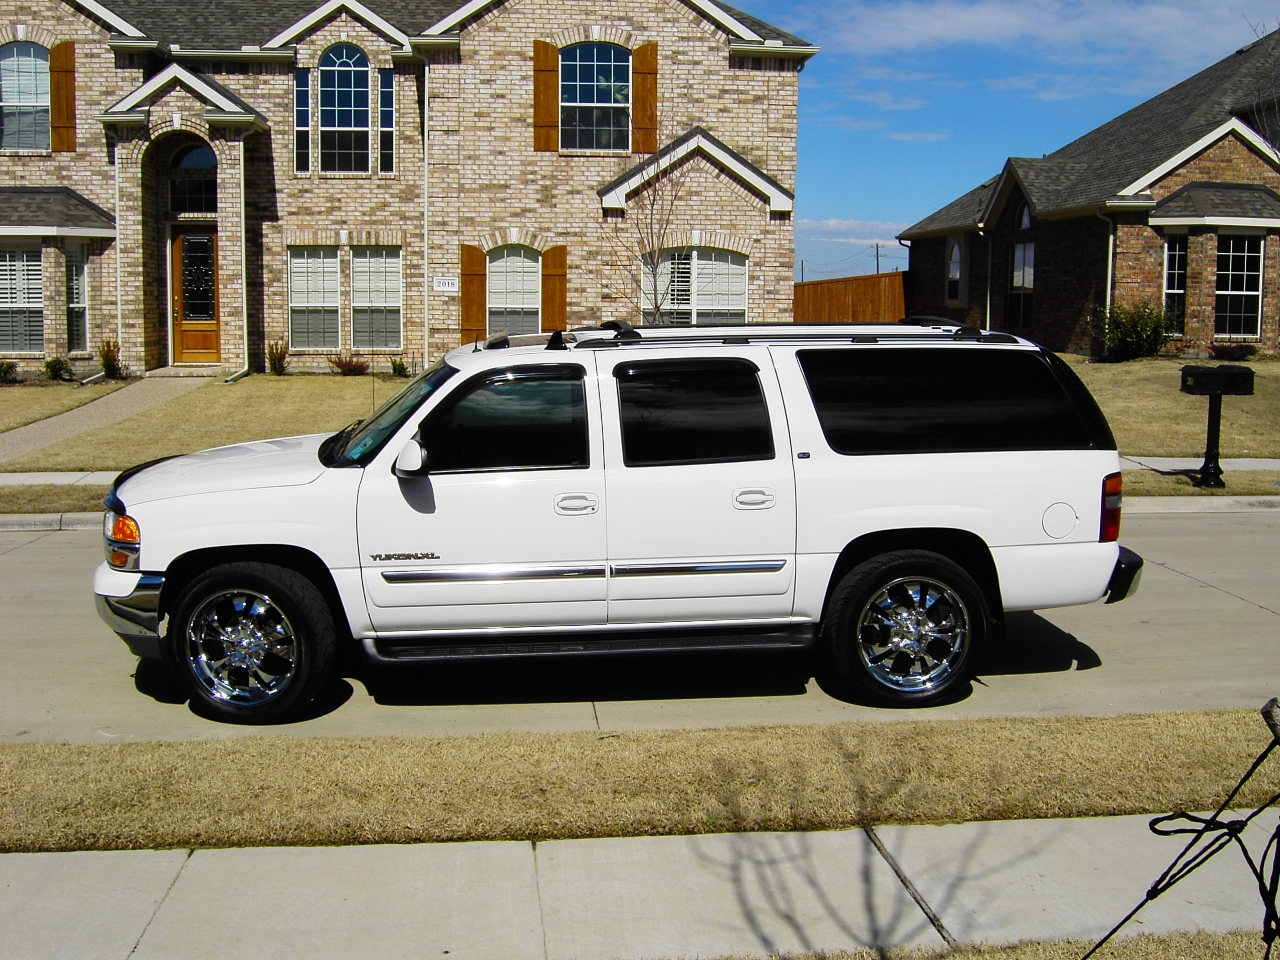 friscomax 2002 gmc yukon xl 1500sport utility specs. Black Bedroom Furniture Sets. Home Design Ideas